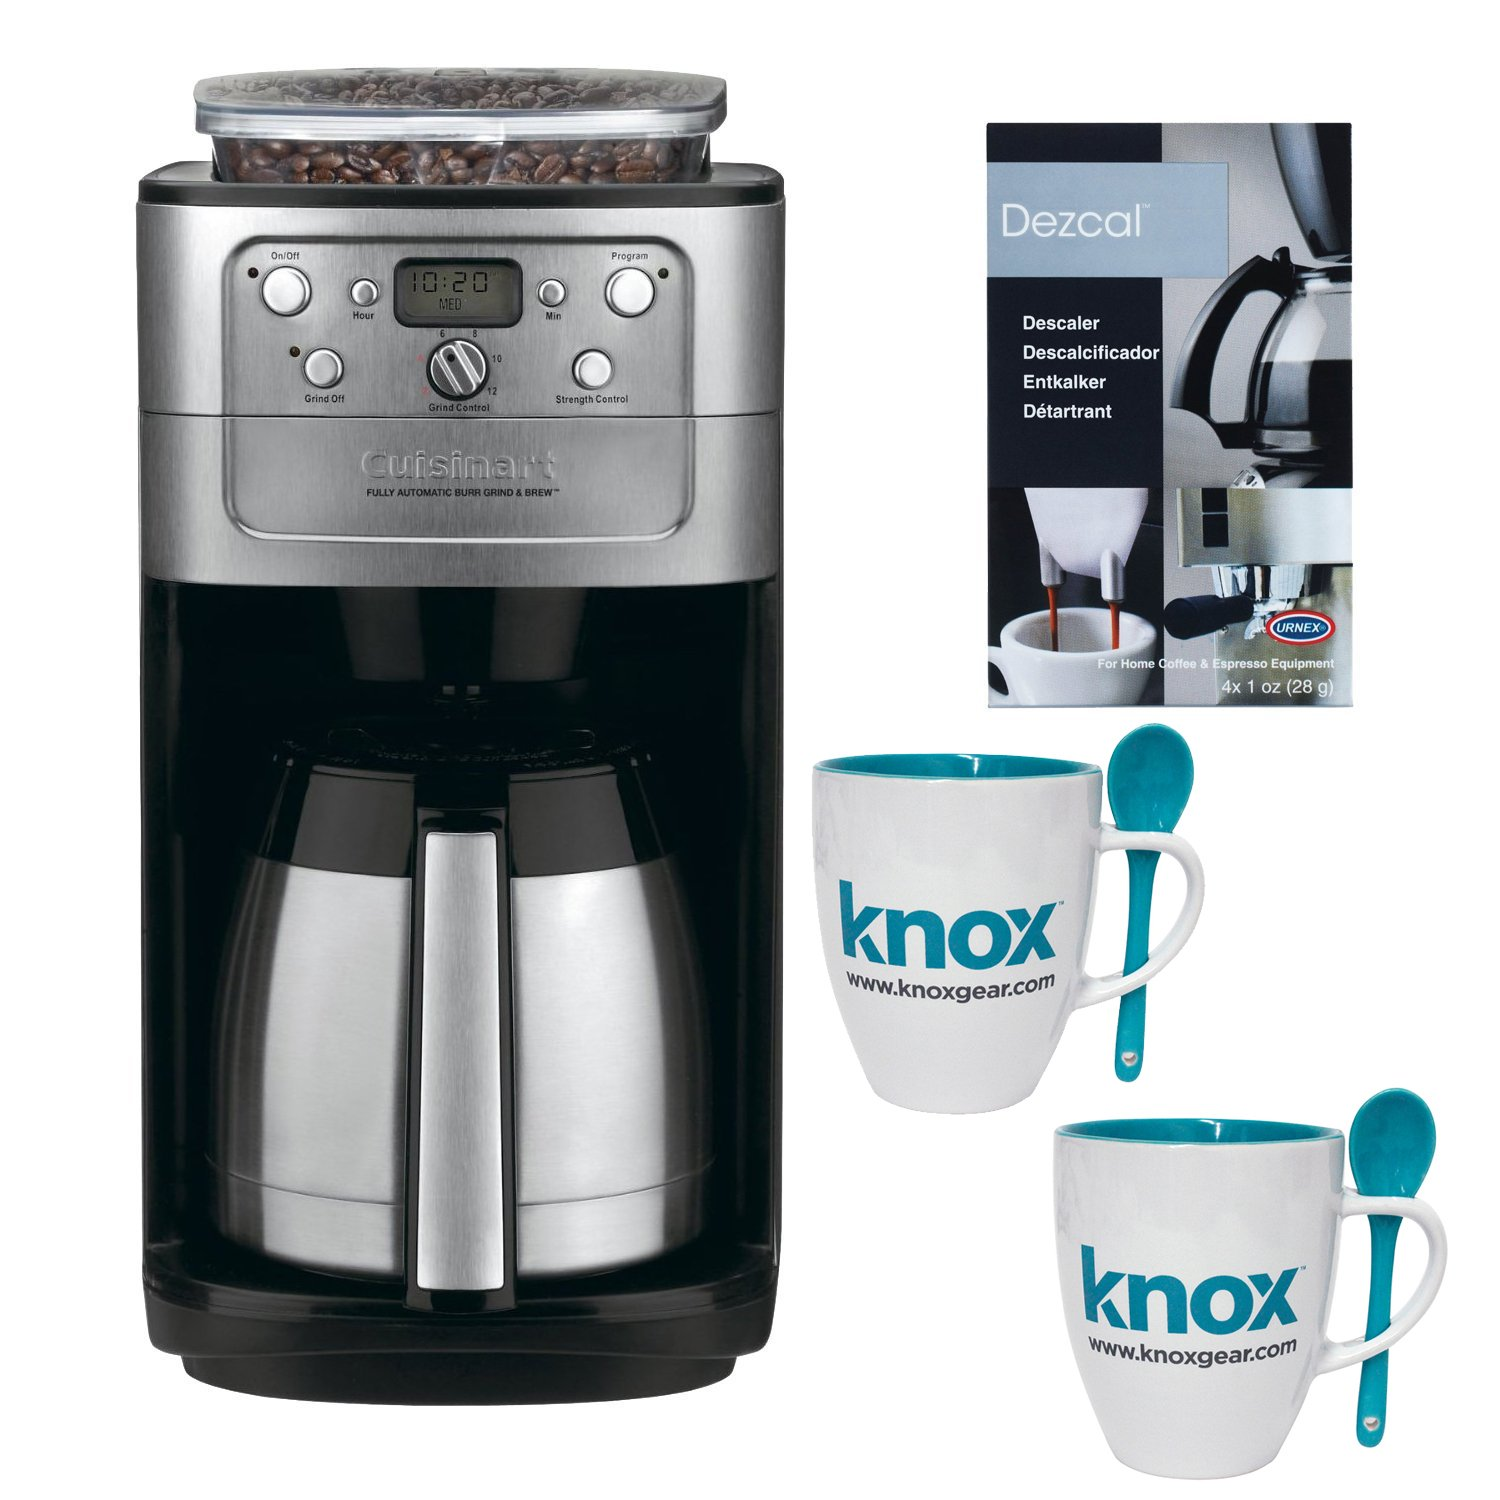 Cuisinart DGB-900BC Burr Grind & Brew Thermal 12-Cup Automatic Coffeemaker w/ 2 Knox Mugs & Spoons Bundle